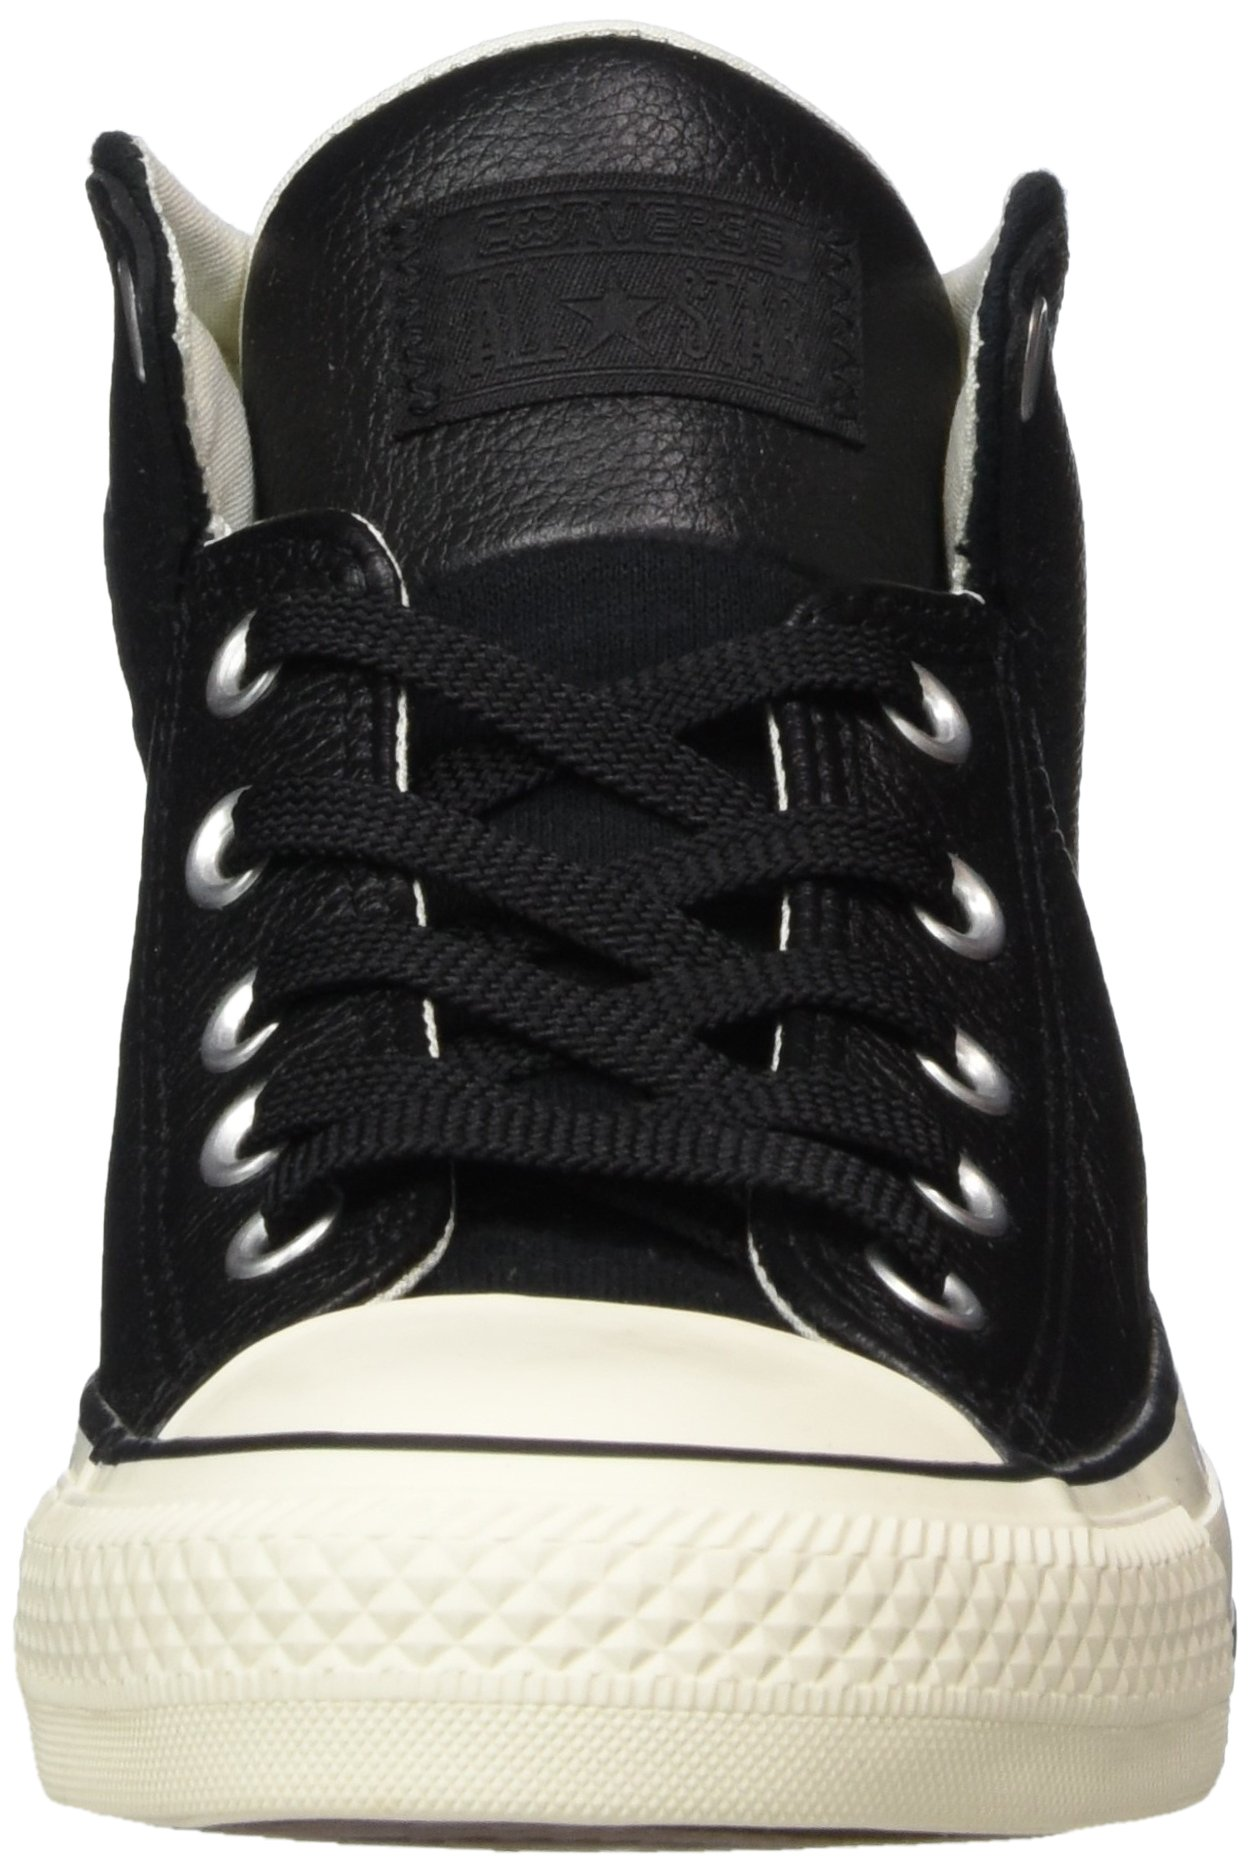 Converse Unisex Chuck Taylor All Star High Street Kurim Mid Sneaker Leather Black 10.5 D(M) US by Converse (Image #4)